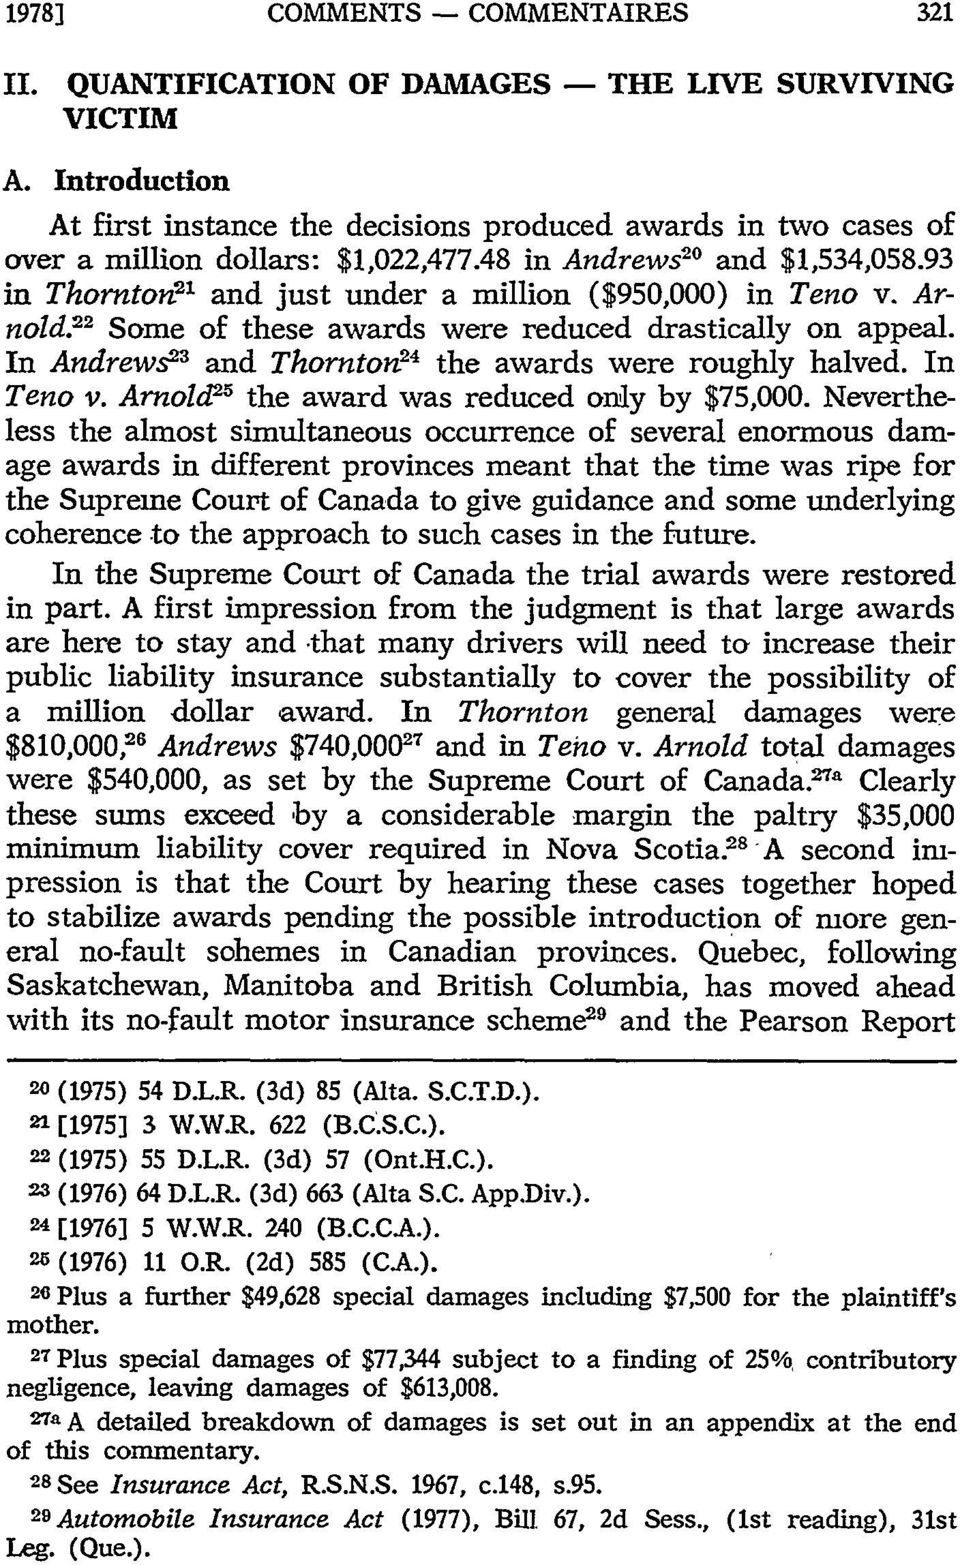 93 in Thorntoi 2 ' and just under a million ($950,000) in Teno v. Arnold. 2 2 Some of these awards were reduced drastically on appeal. In Andrews2 and Thornton 2 4 the awards were roughly halved.